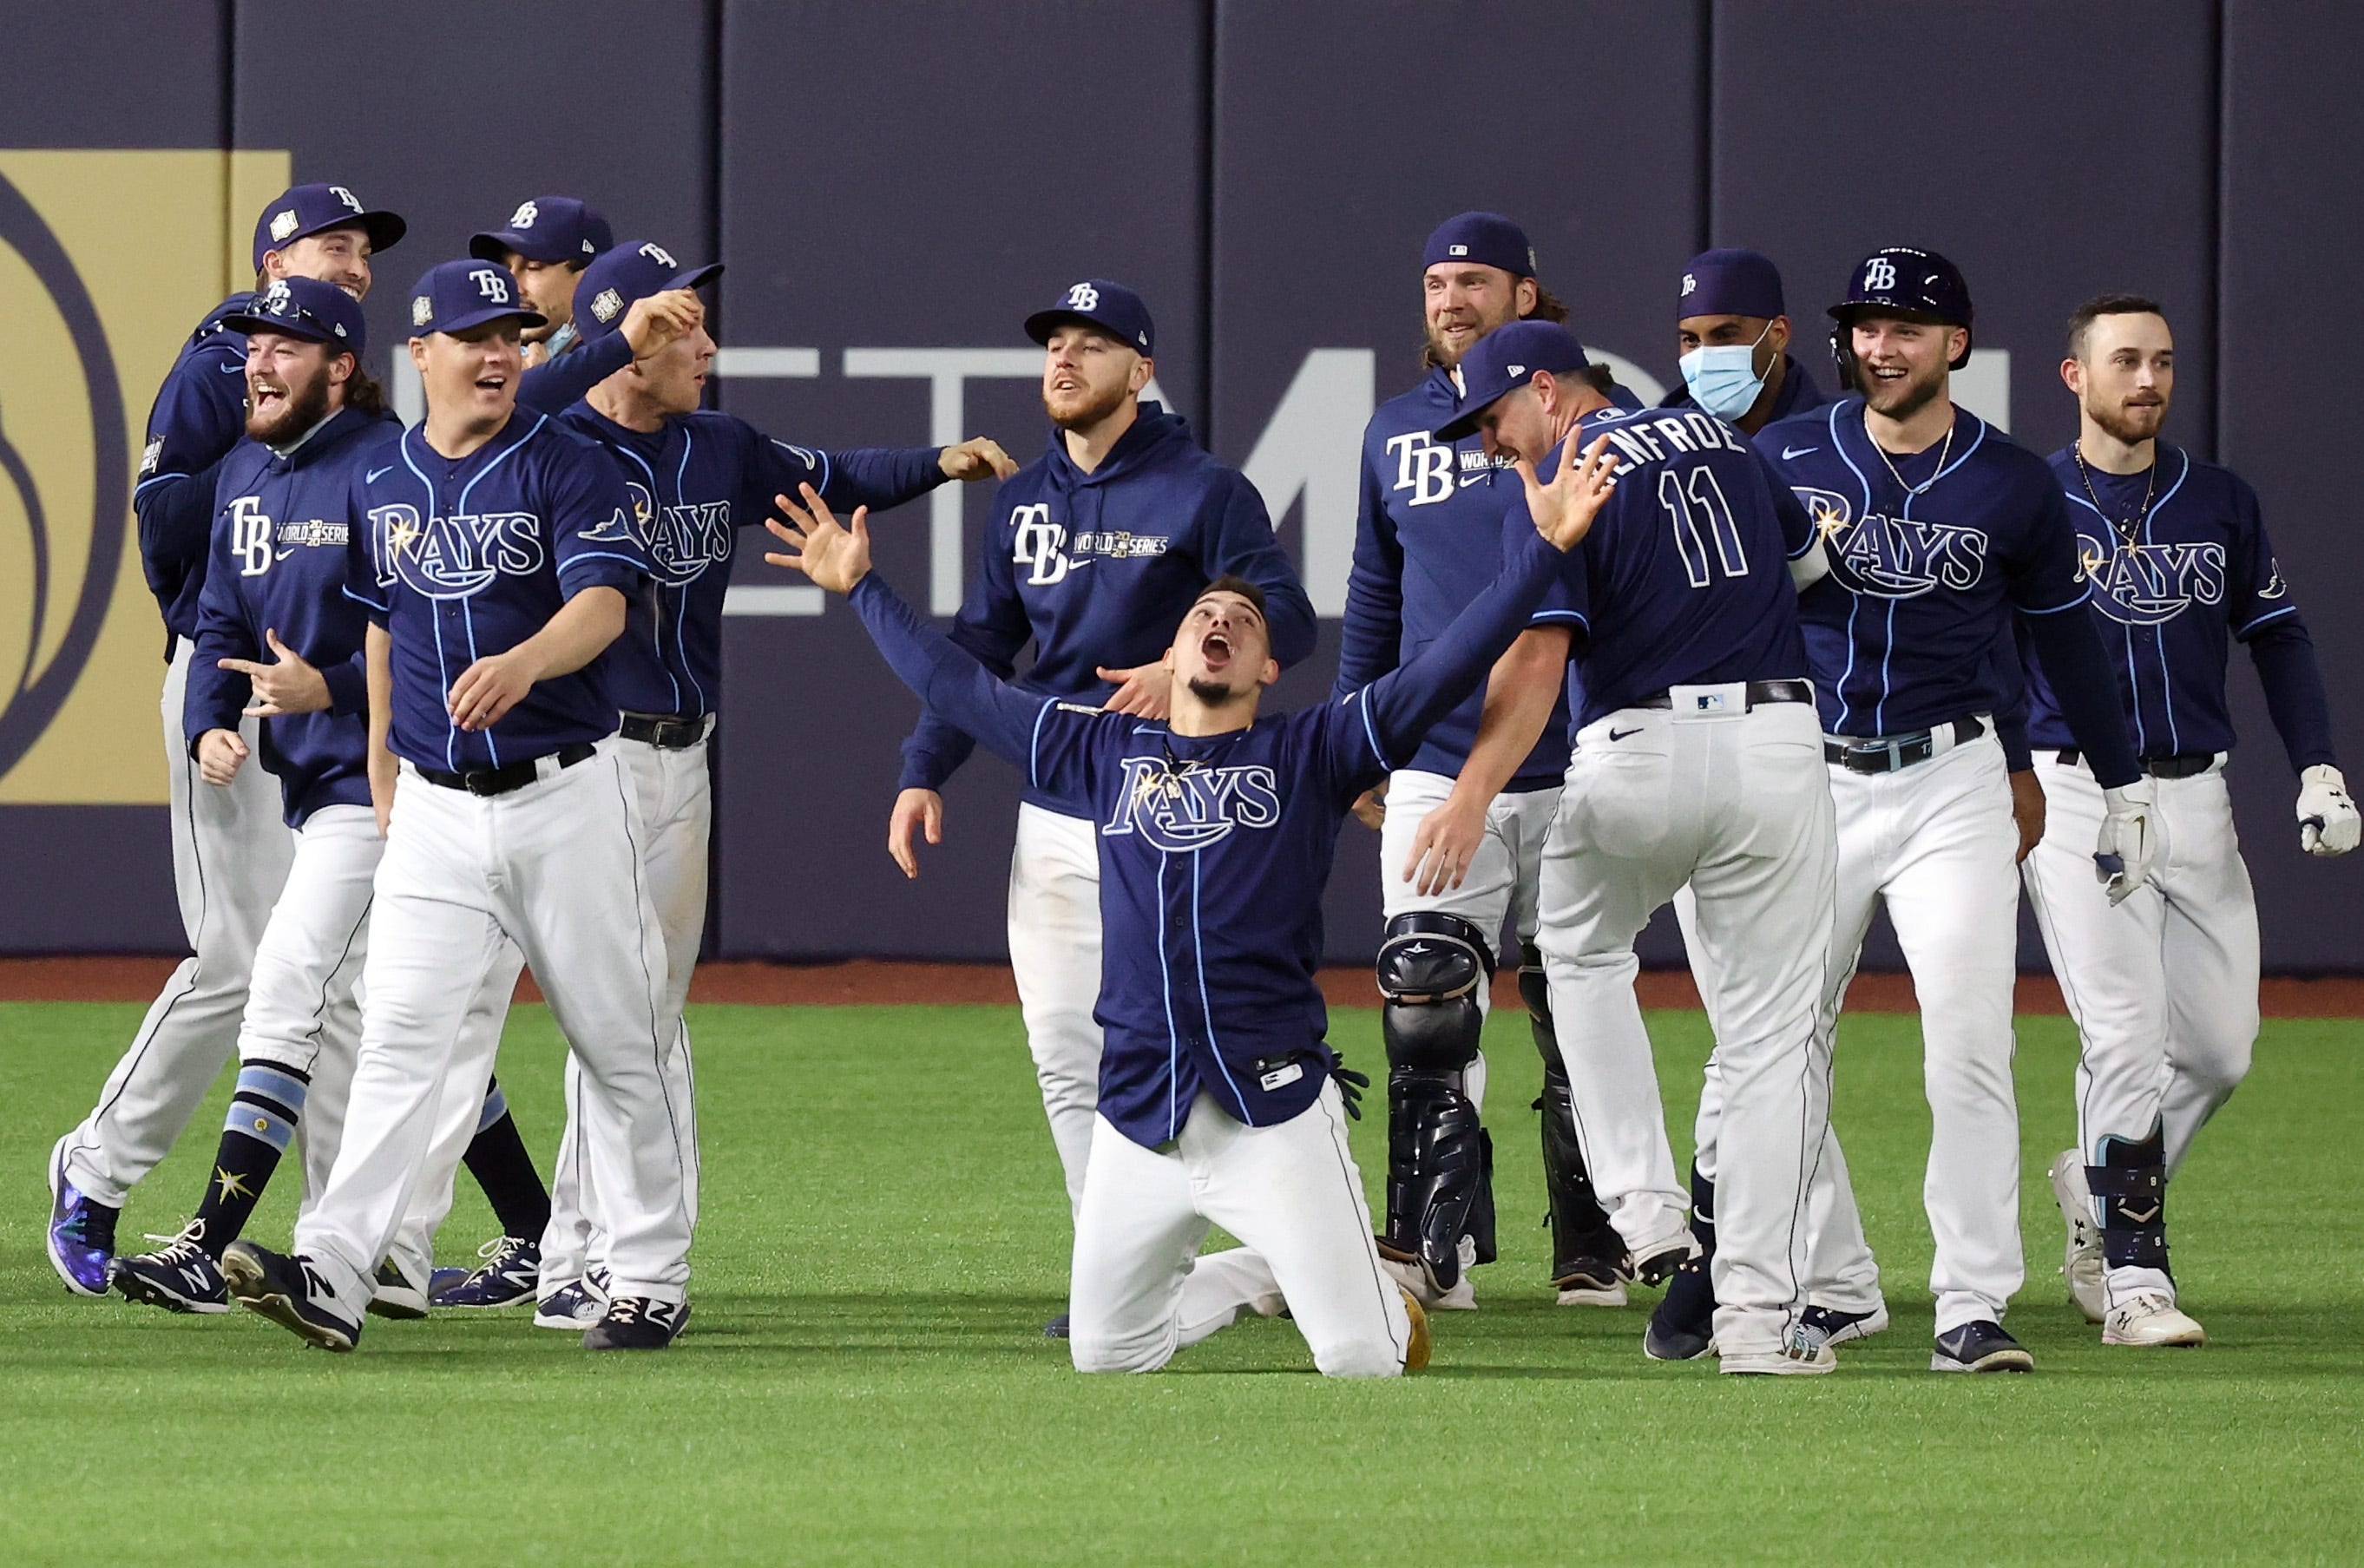 'That was insane': Rays stun Dodgers in Game 4 with epic World Series finish